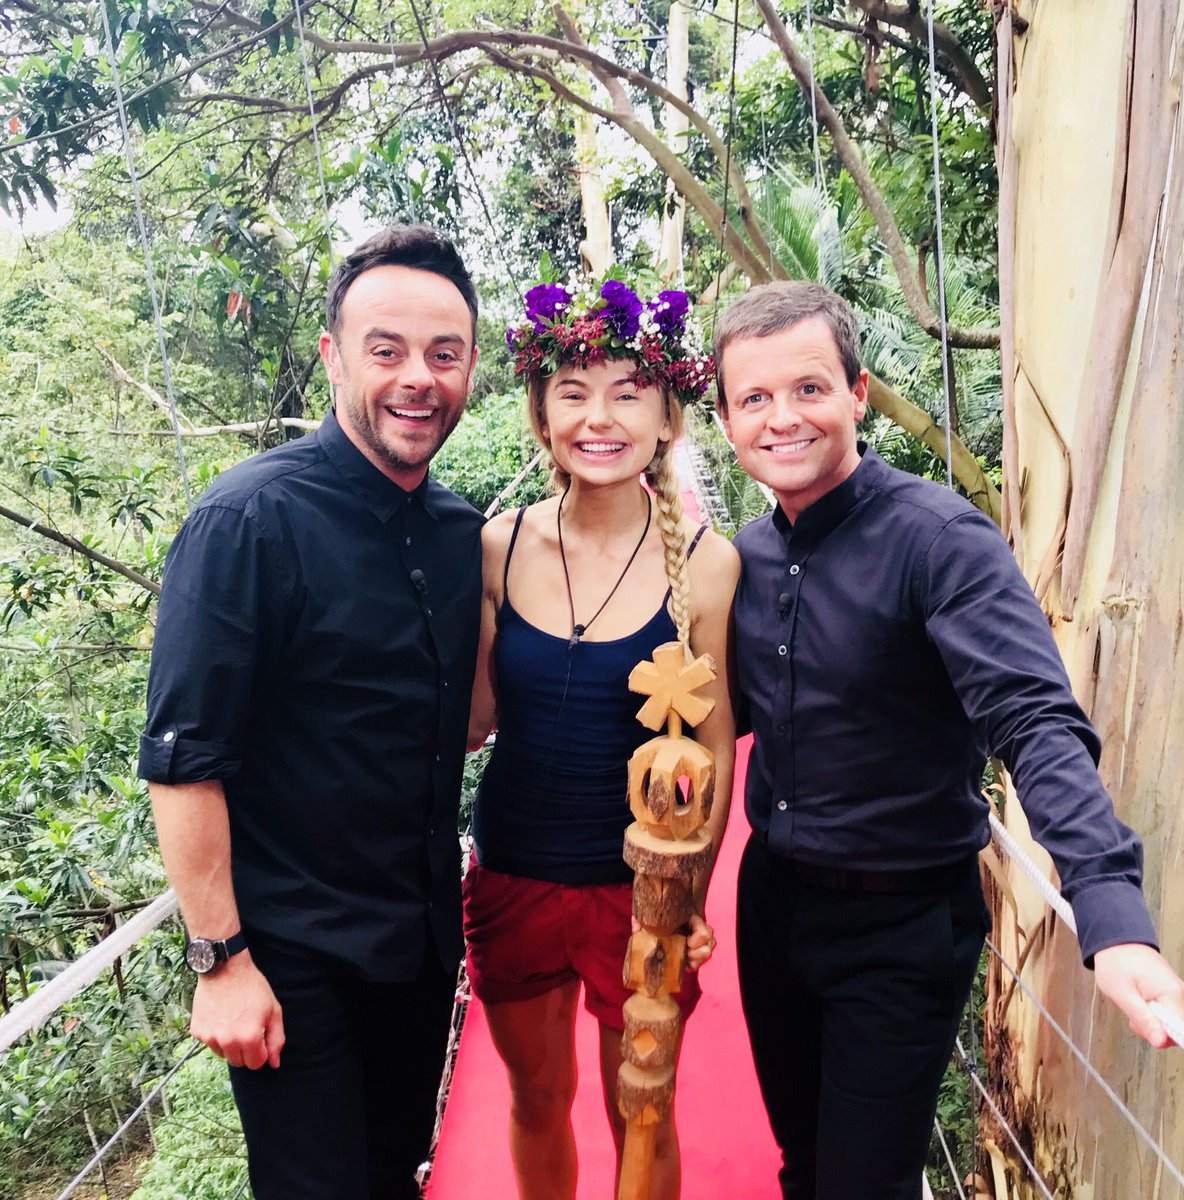 I'm a Celebrity viewers react to Ant and Dec's awkward ...